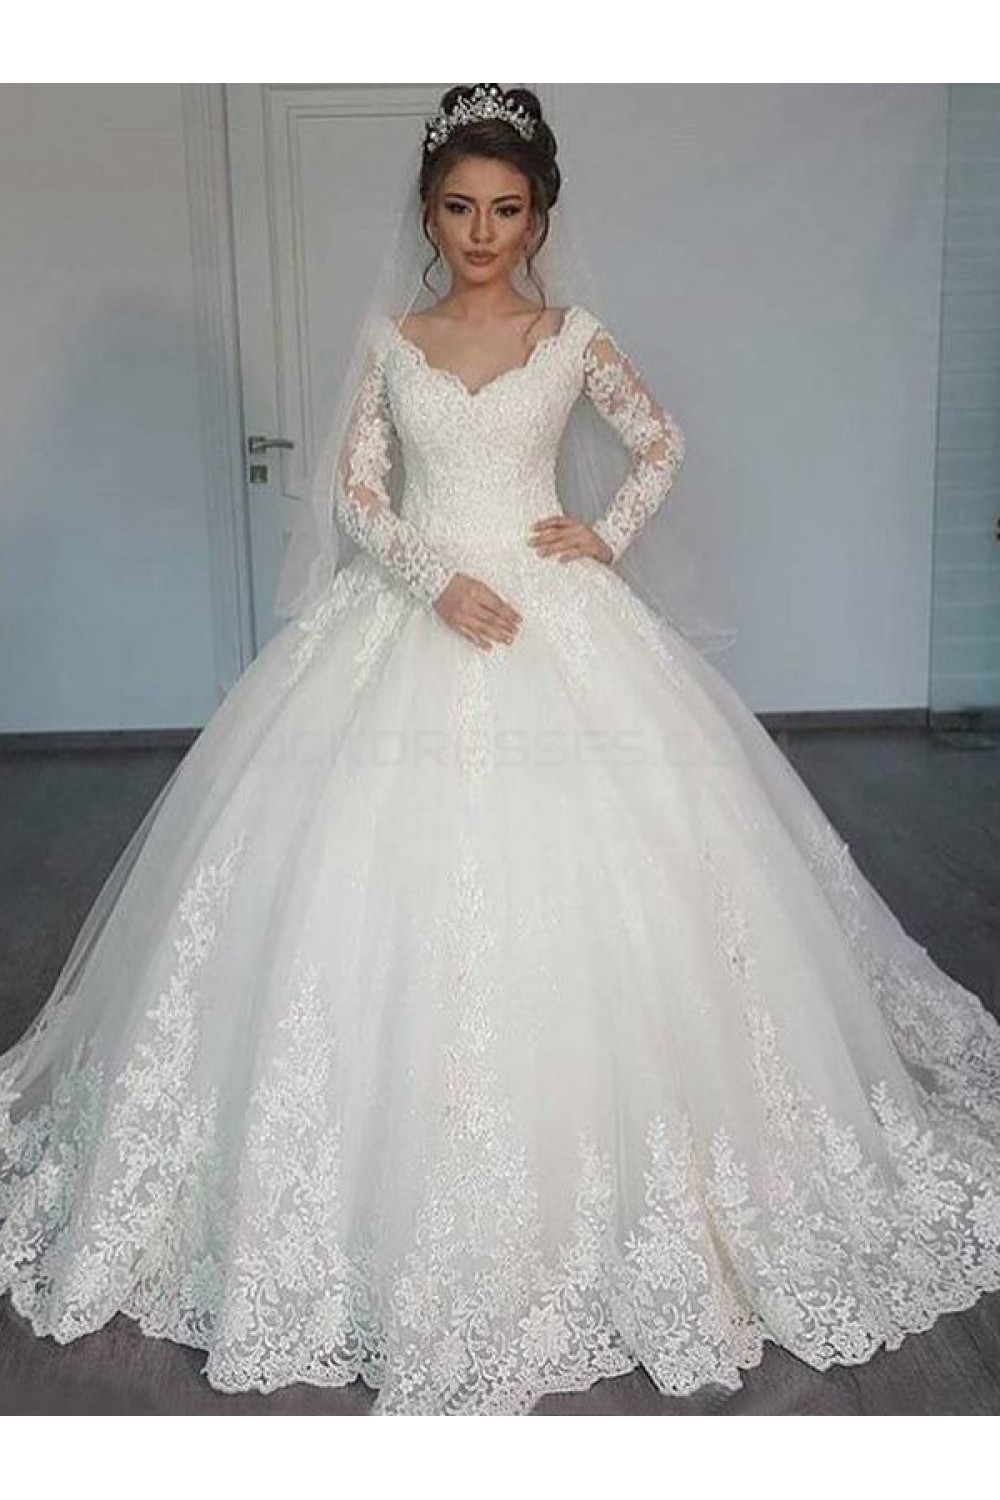 Bridal ball gown v neck lace long sleeves wedding dresses Wedding dress a line ball gown